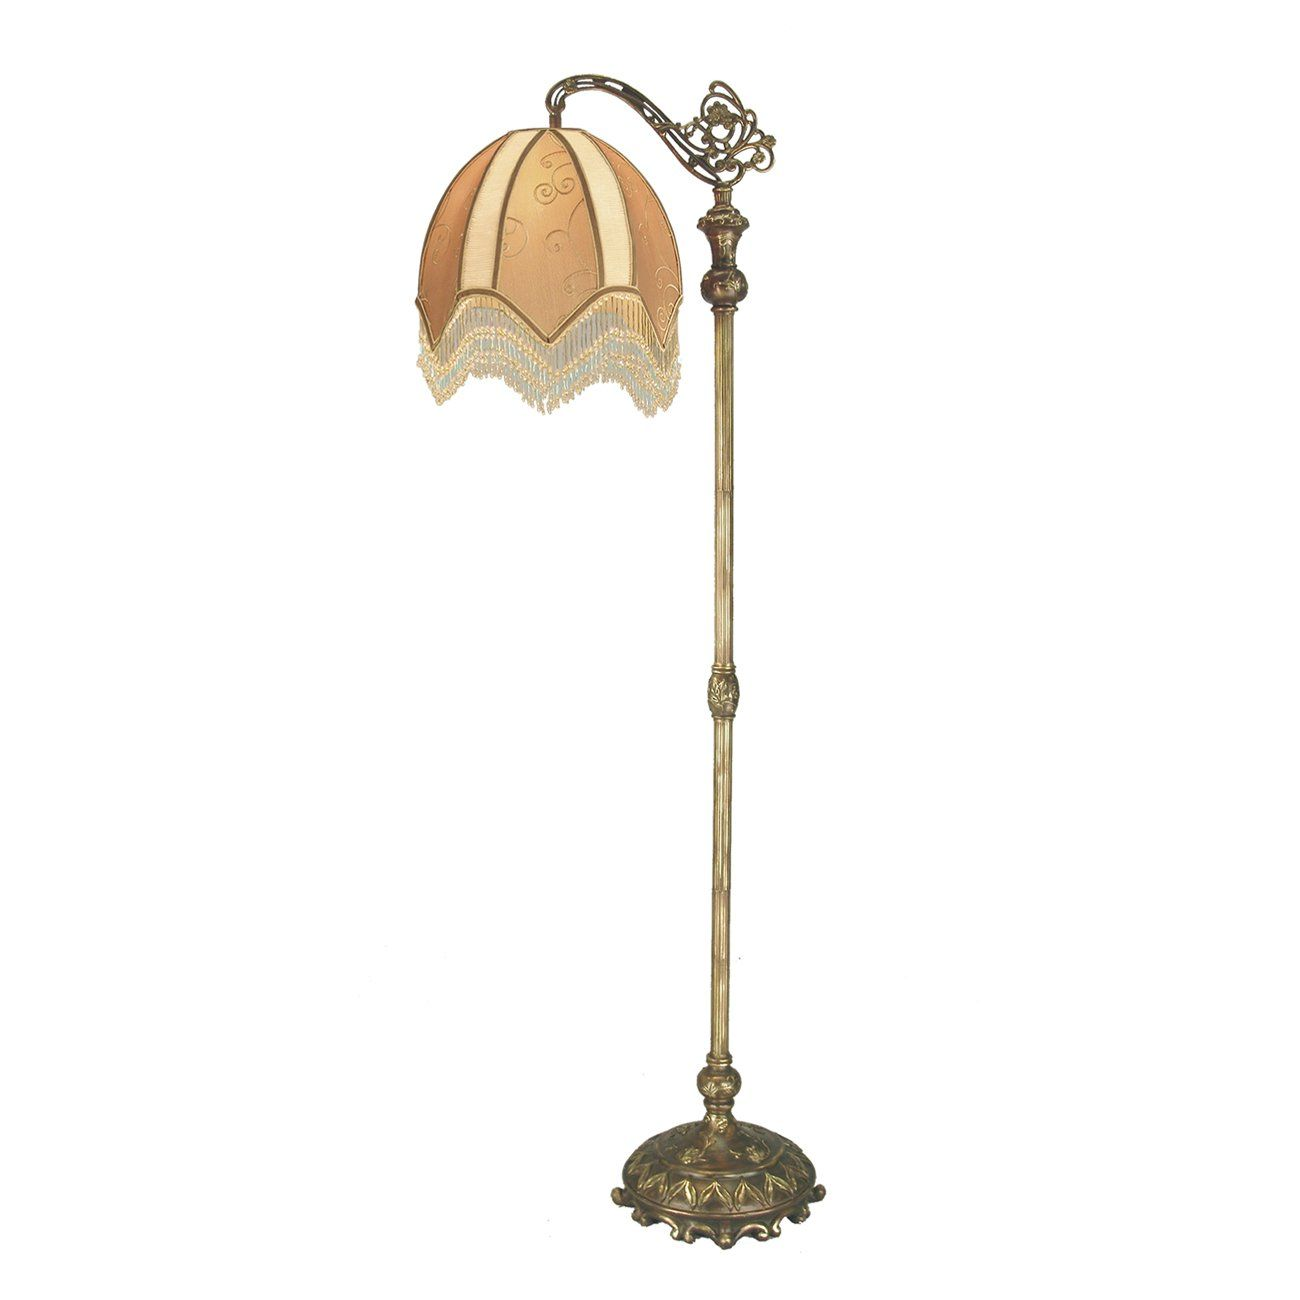 Best Antique Torchiere Floor Lamps With Images Floor Lamp Antique Floor Lamps Victorian Lamps